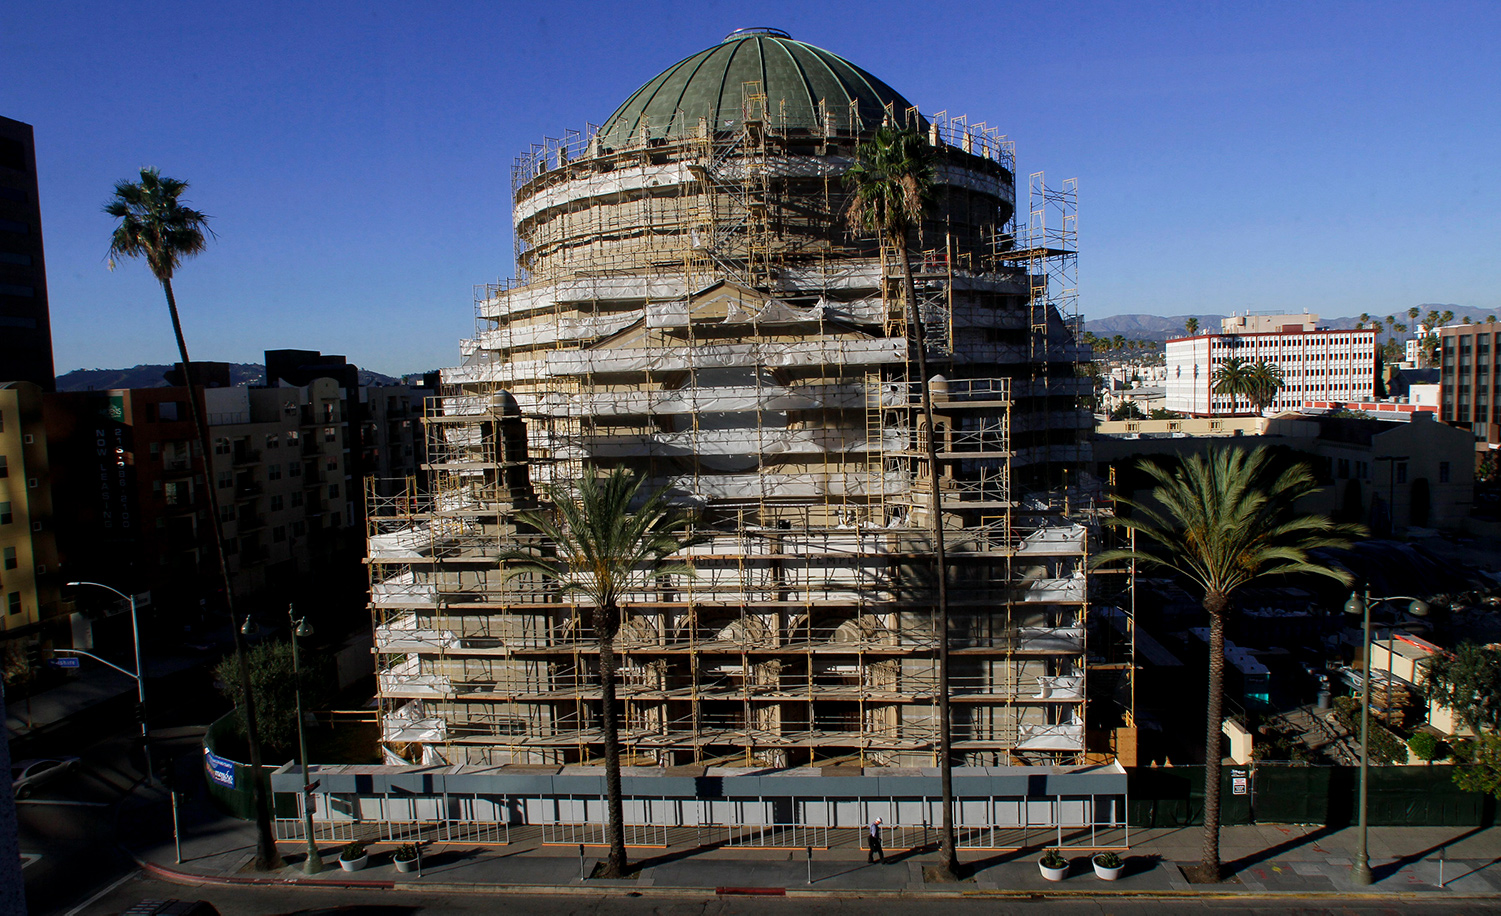 Scaffolding covering the Wilshire Boulevard Temple in Los Angeles on March 6, 2012. Anne Cusack/Los Angeles Times via Getty Images.